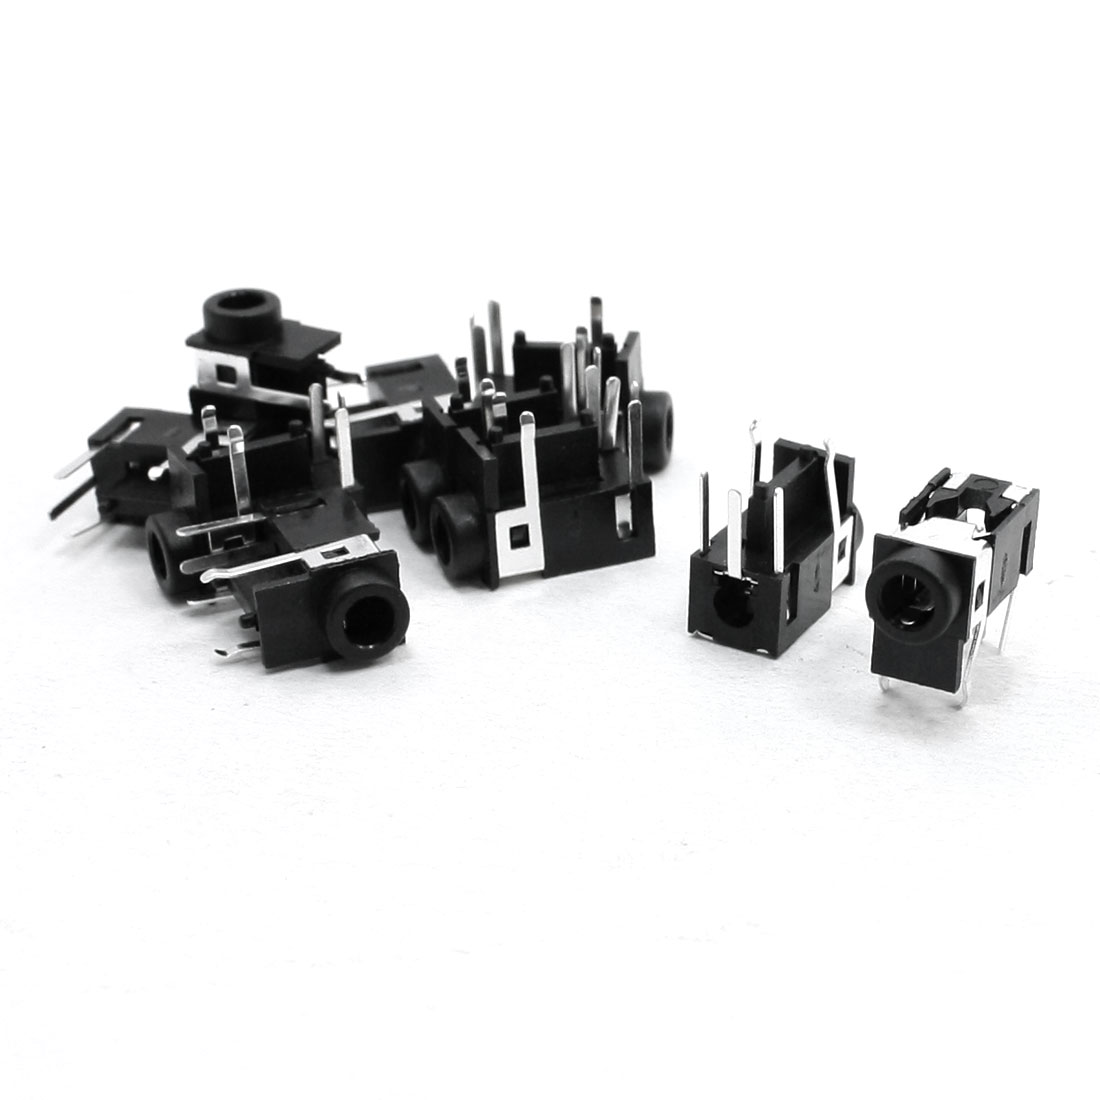 10 Pcs Media Player PCB Mounted 3.5mm Audio Jack Socket Connector Black